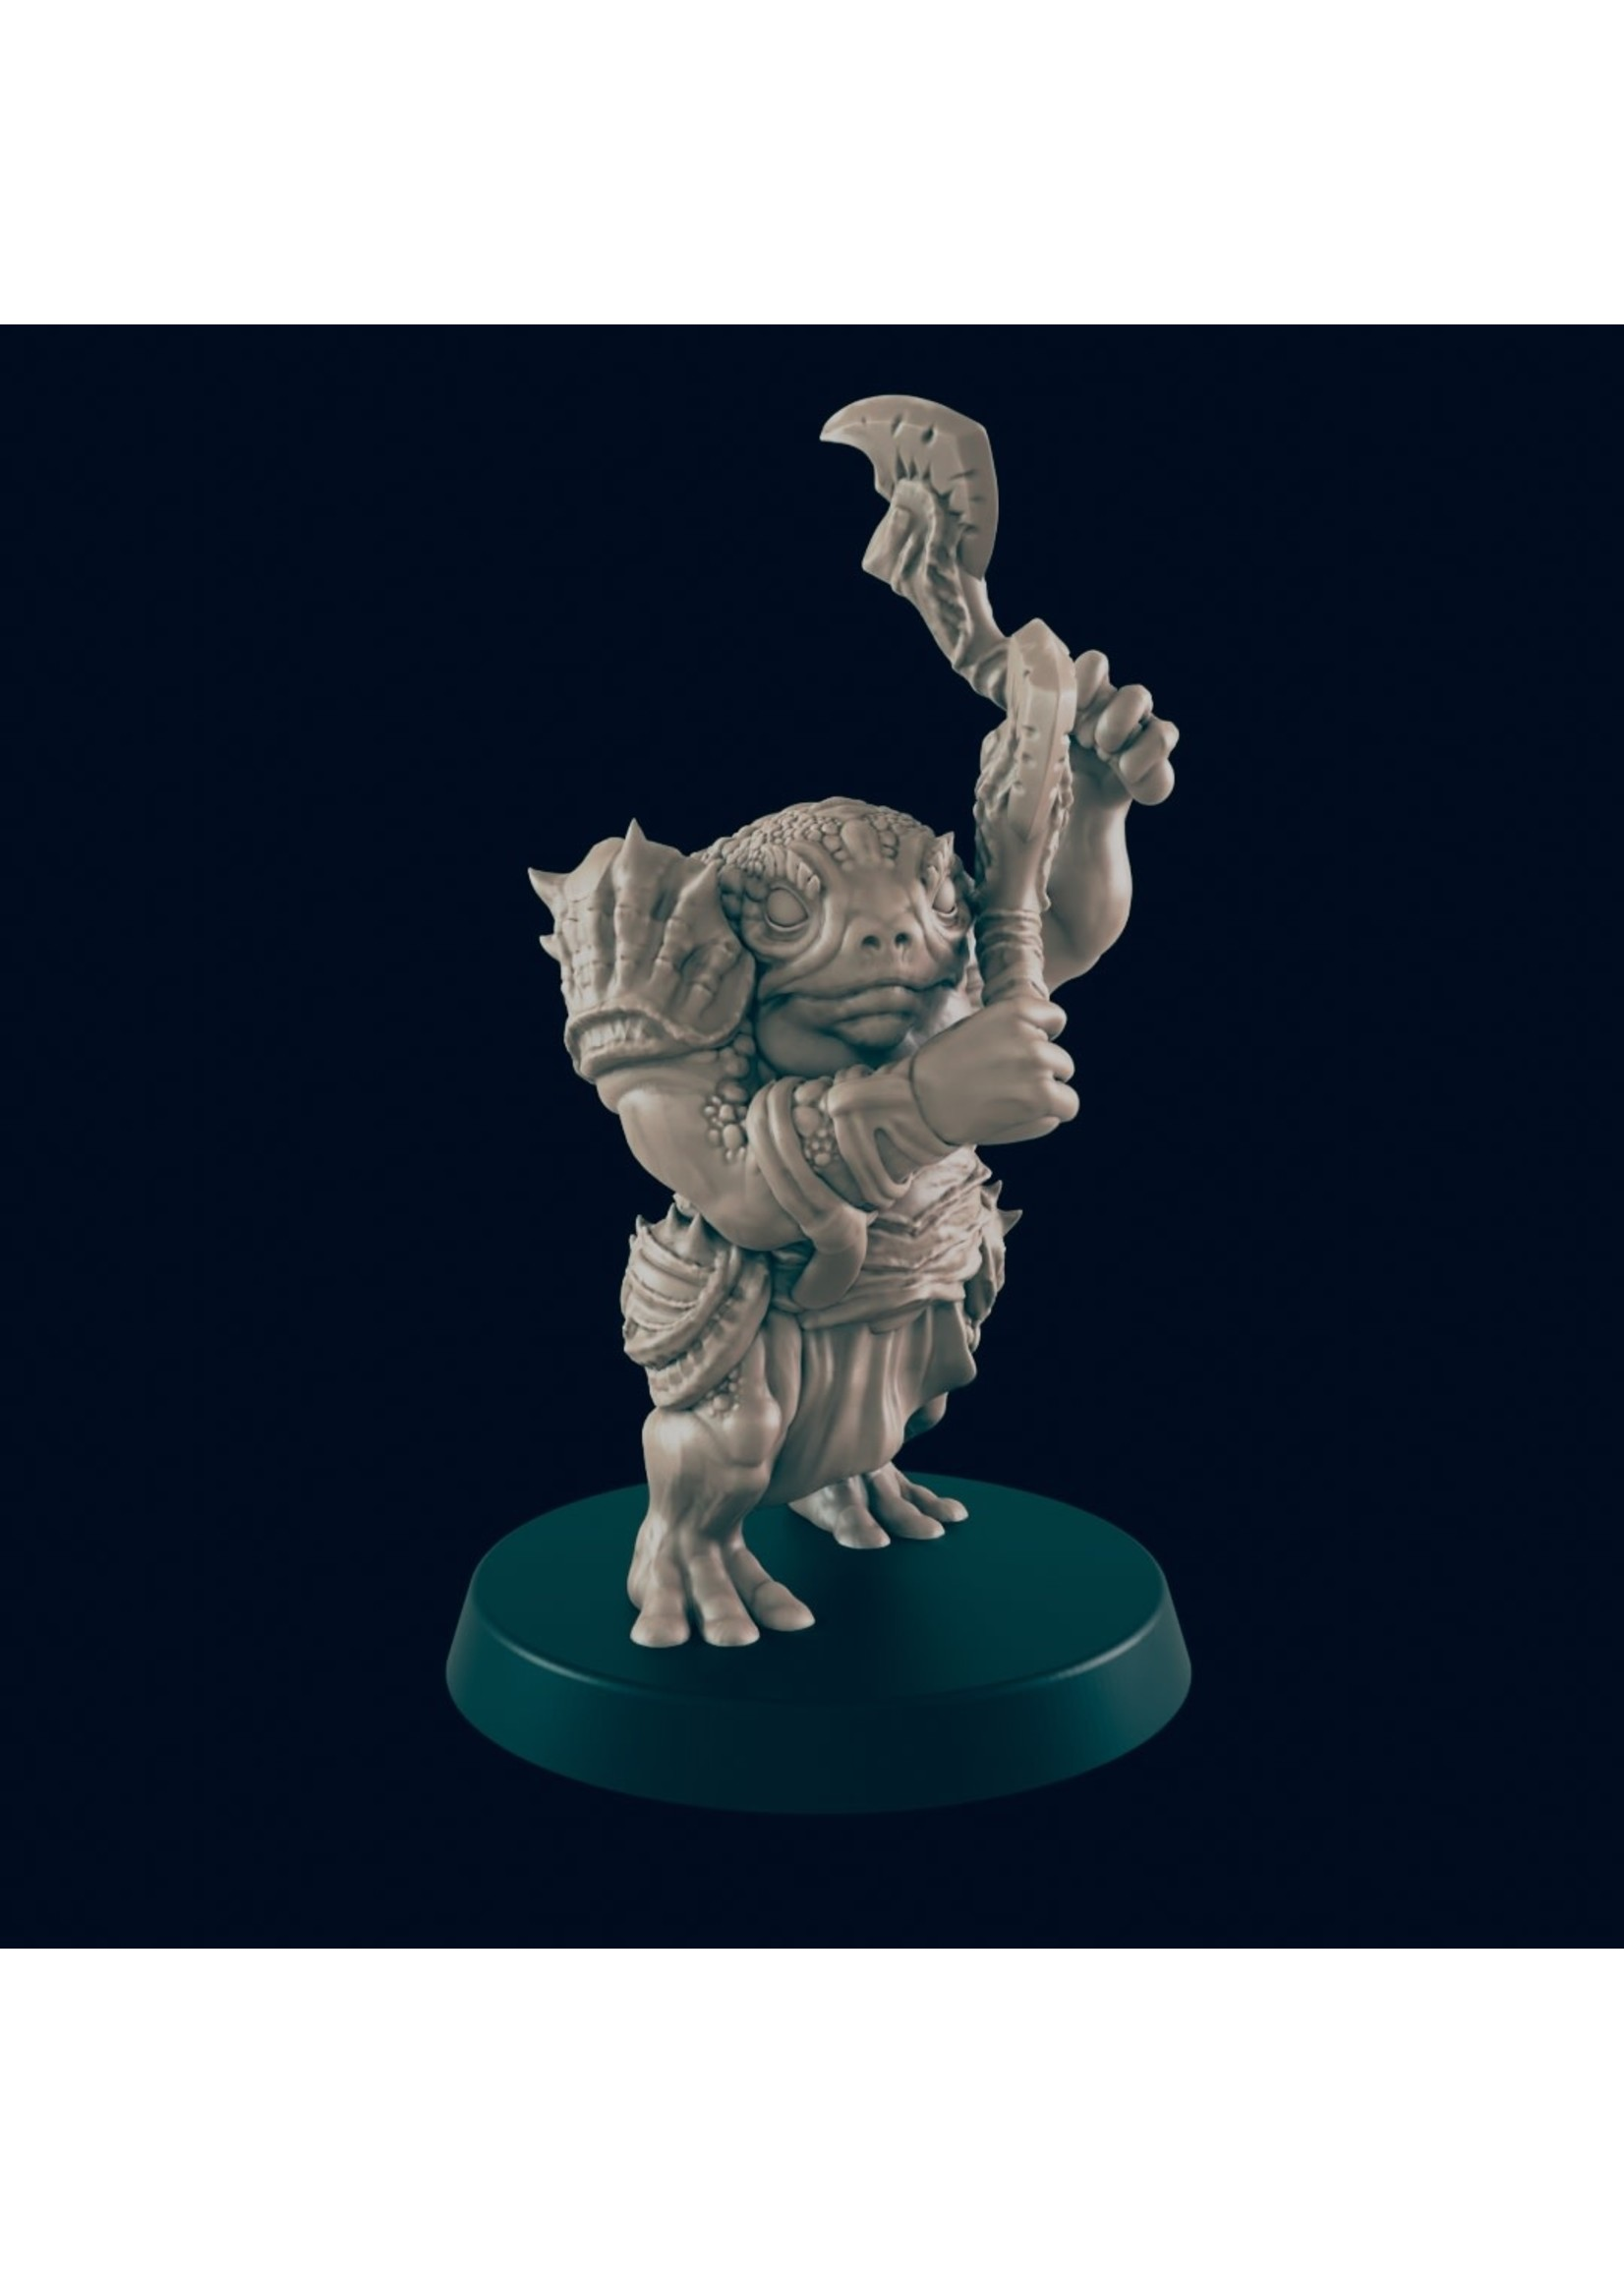 3D Printed Miniature - Bullywug Brute  - Dungeons & Dragons - Beasts and Baddies